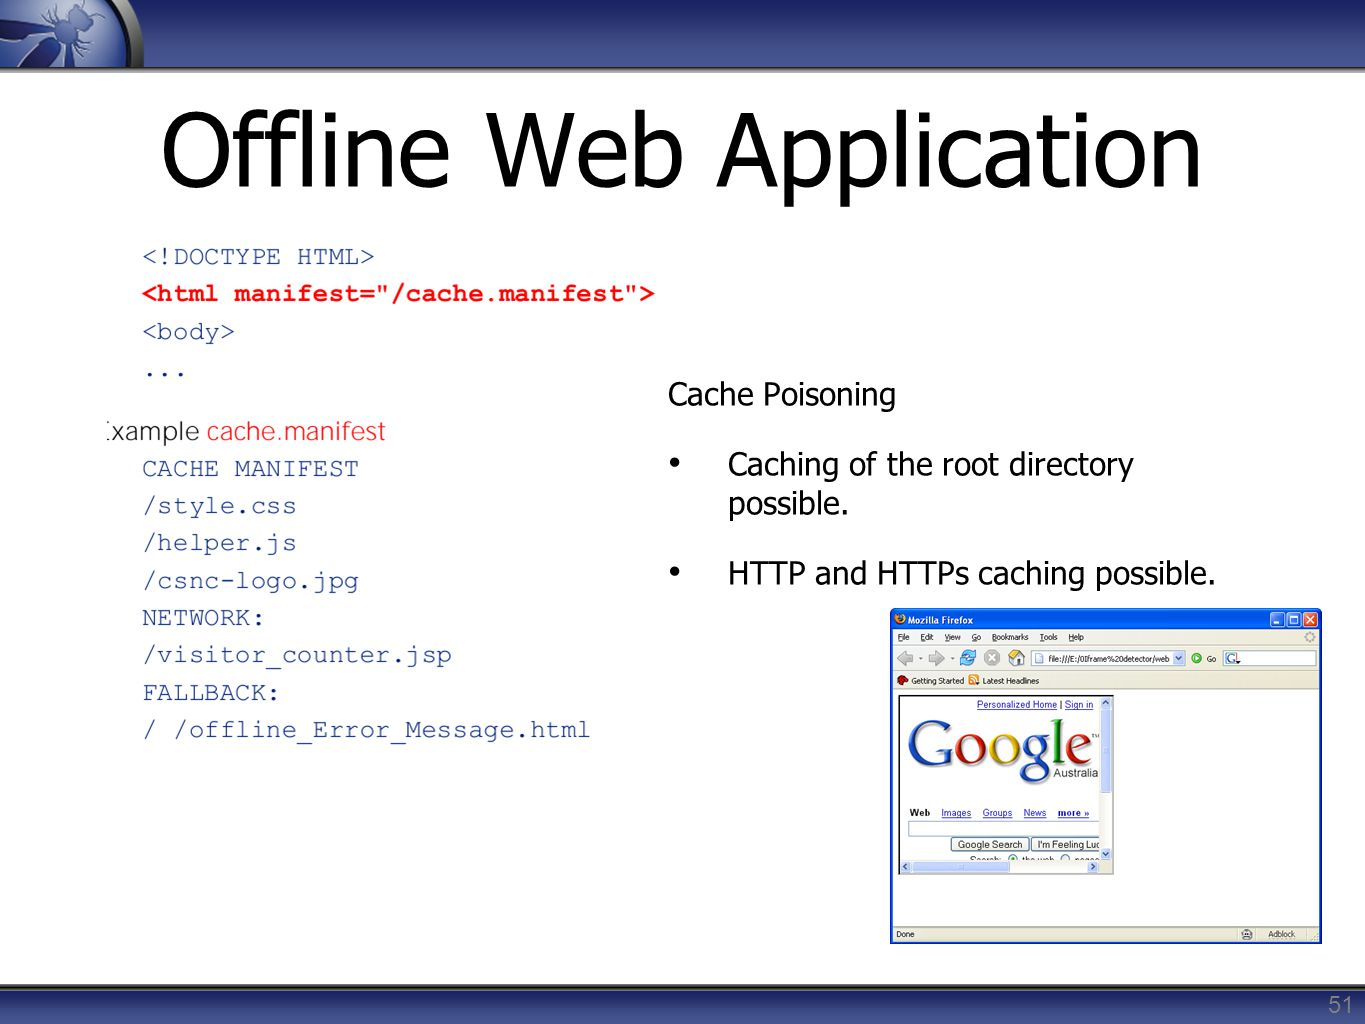 Offline Web Application